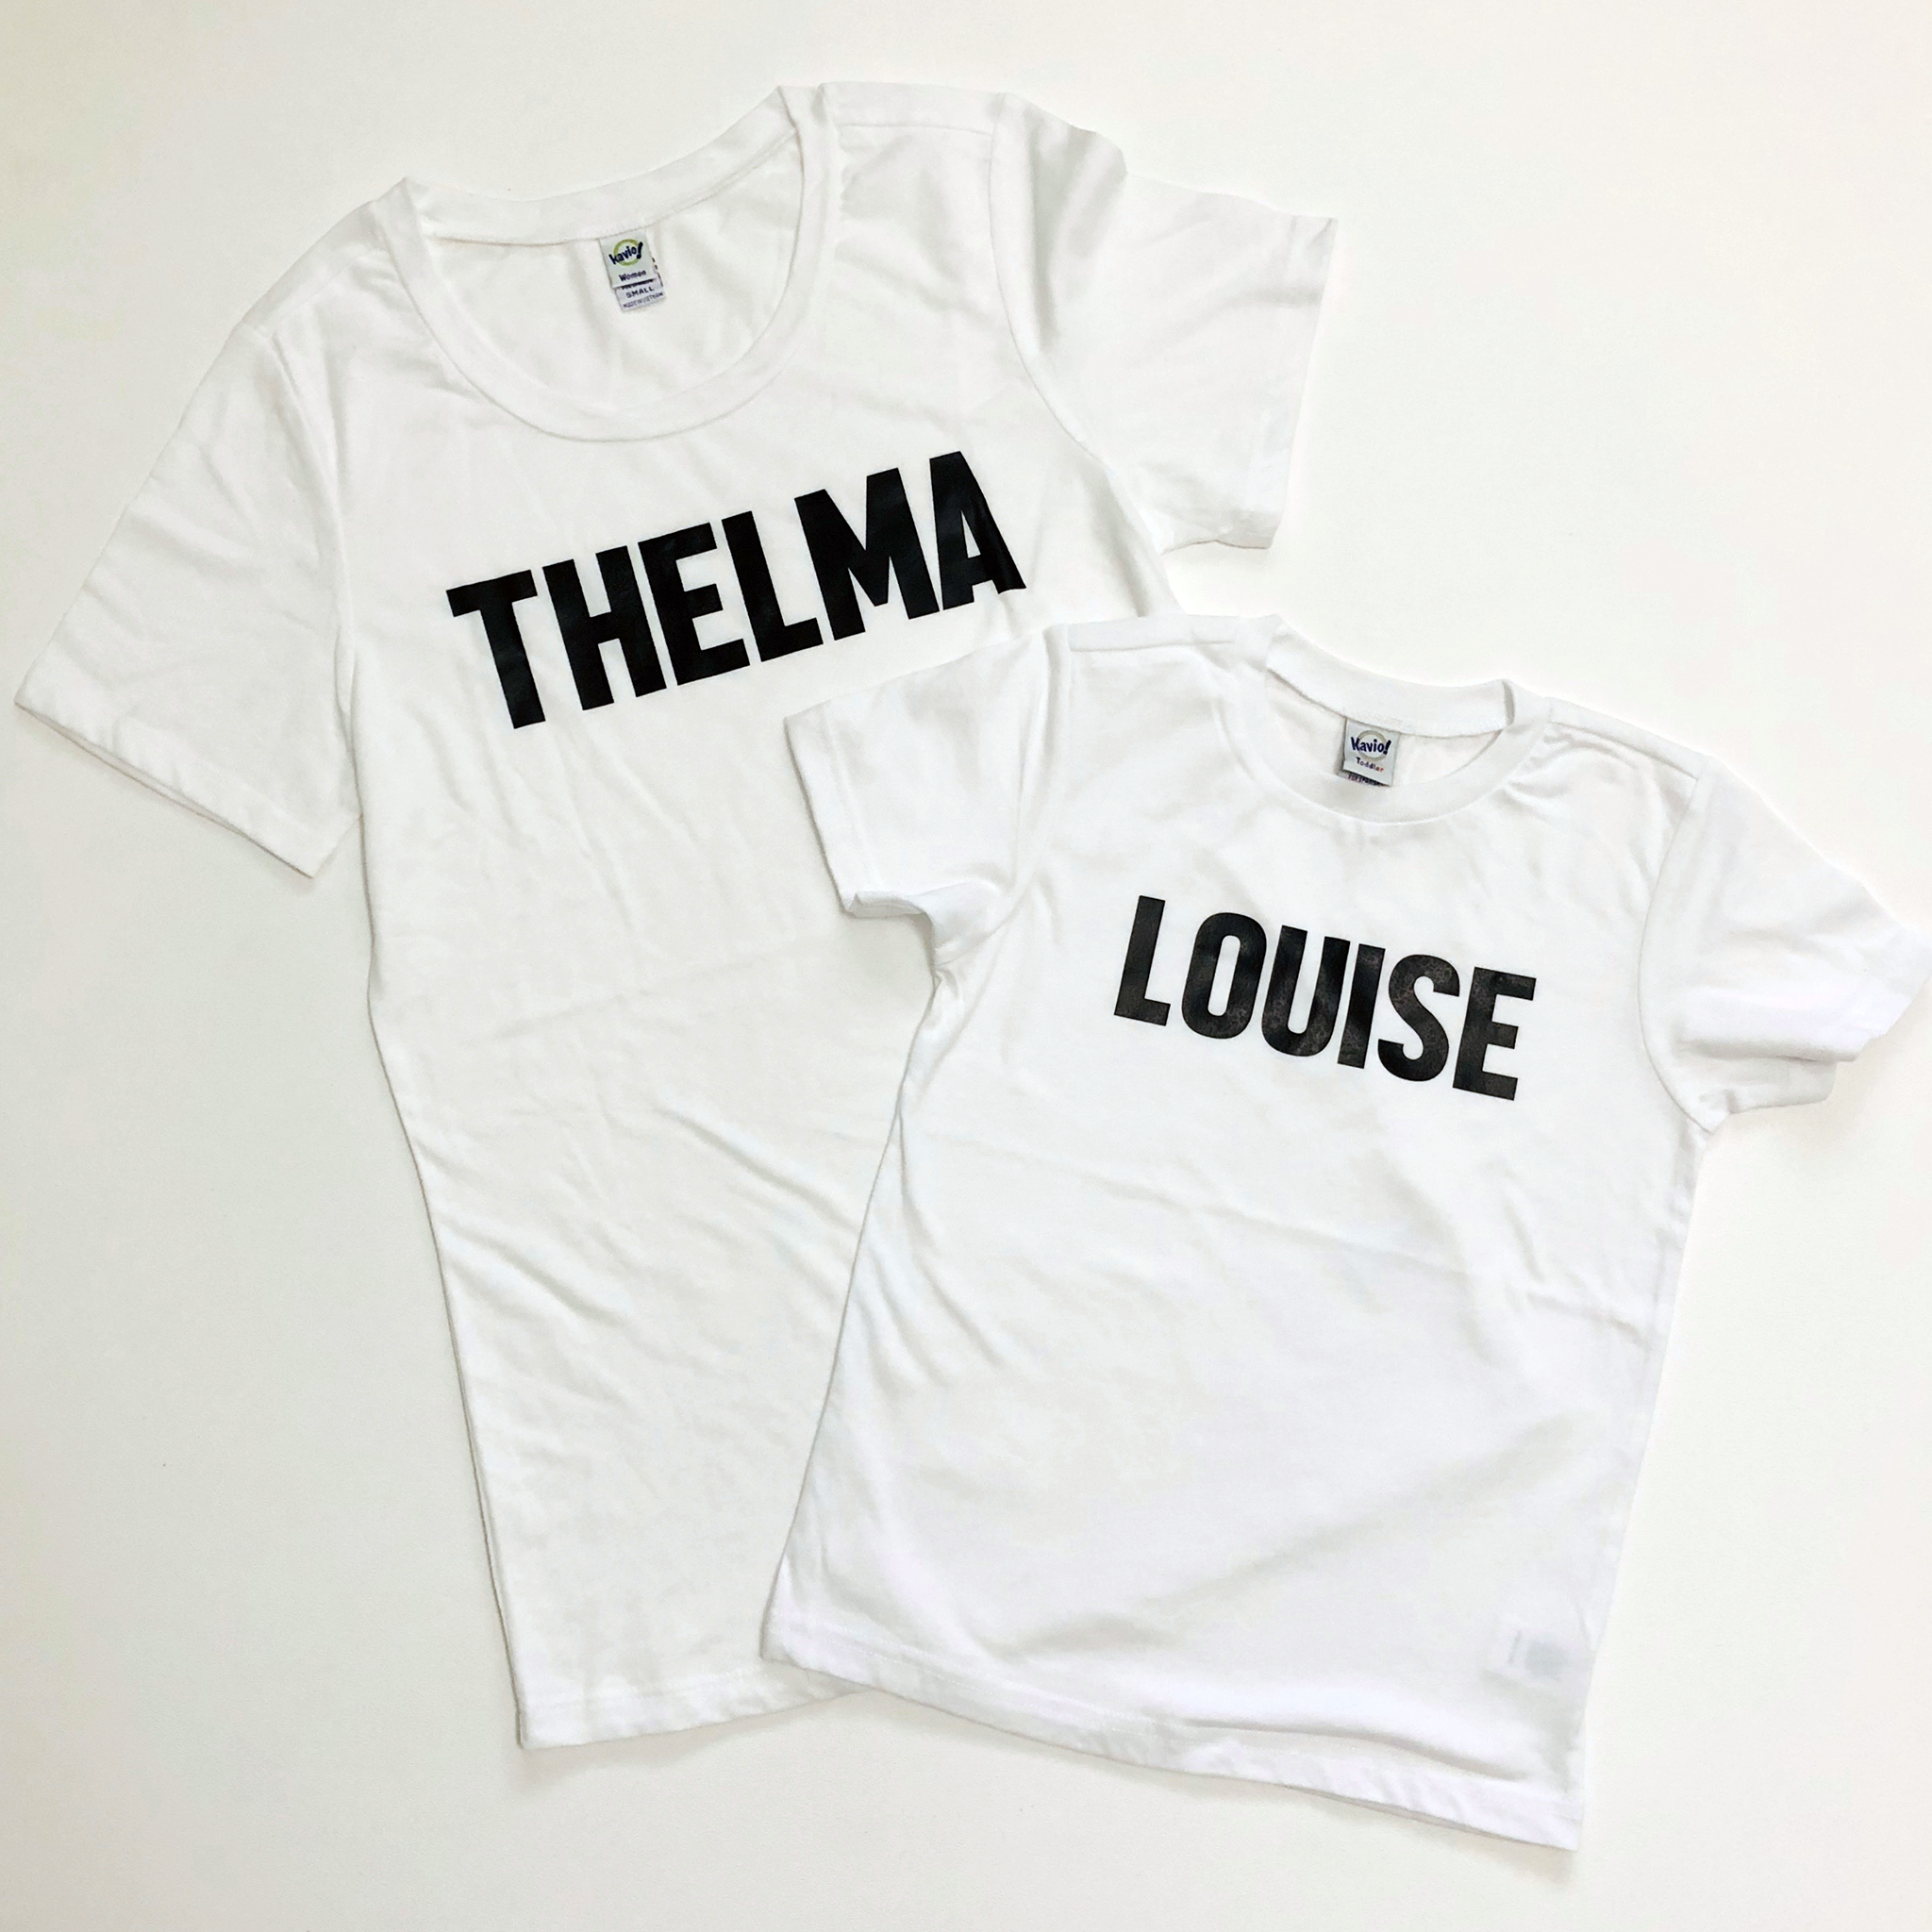 Thelma & Louise Tees Combo